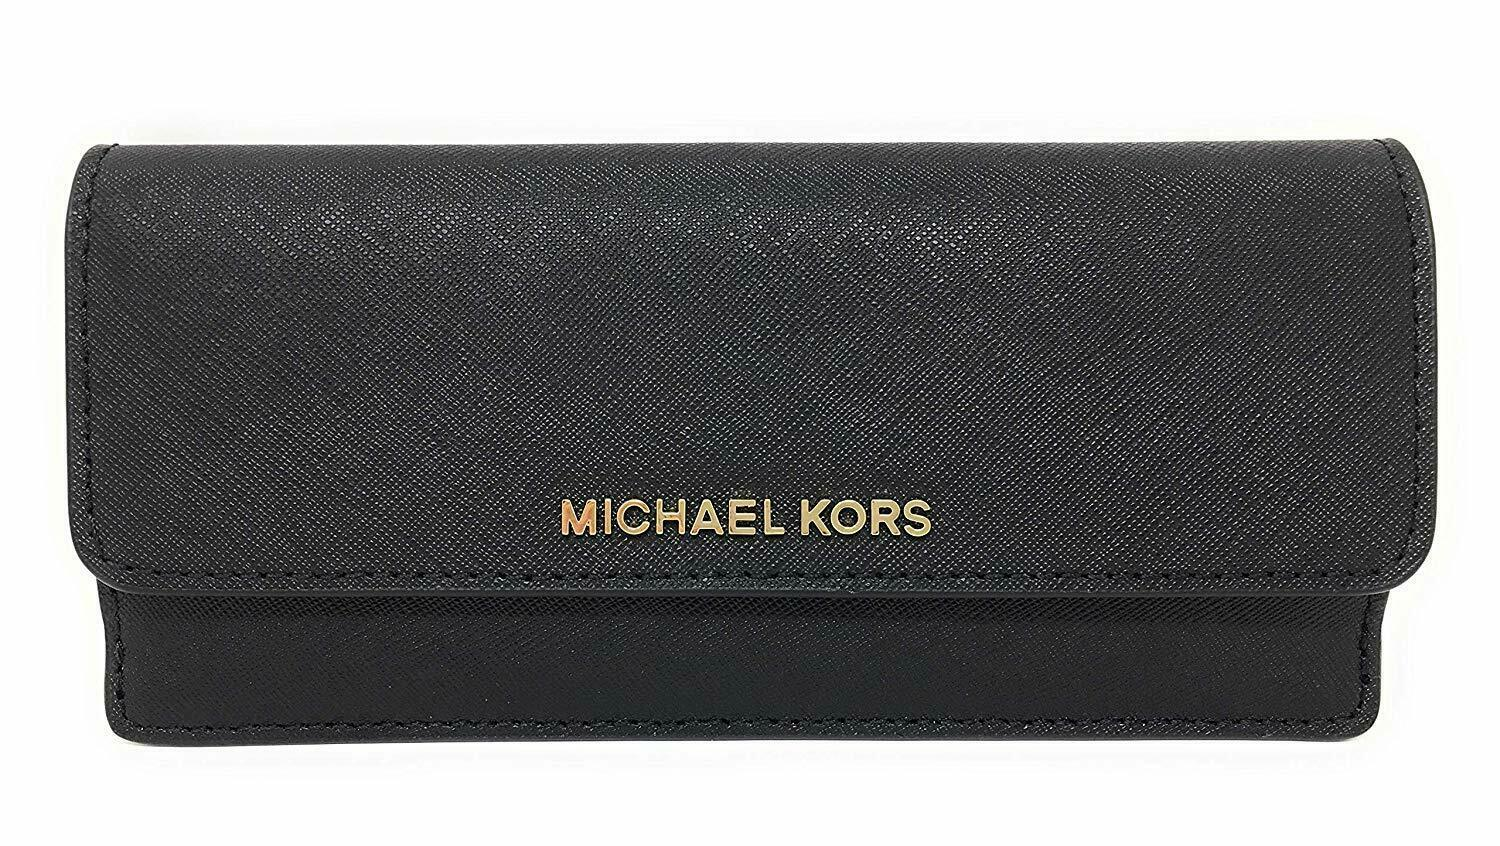 Primary image for NEW! Michael Kors Jet Set Travel Flat Saffiano Leather Wallet-Black/Gold